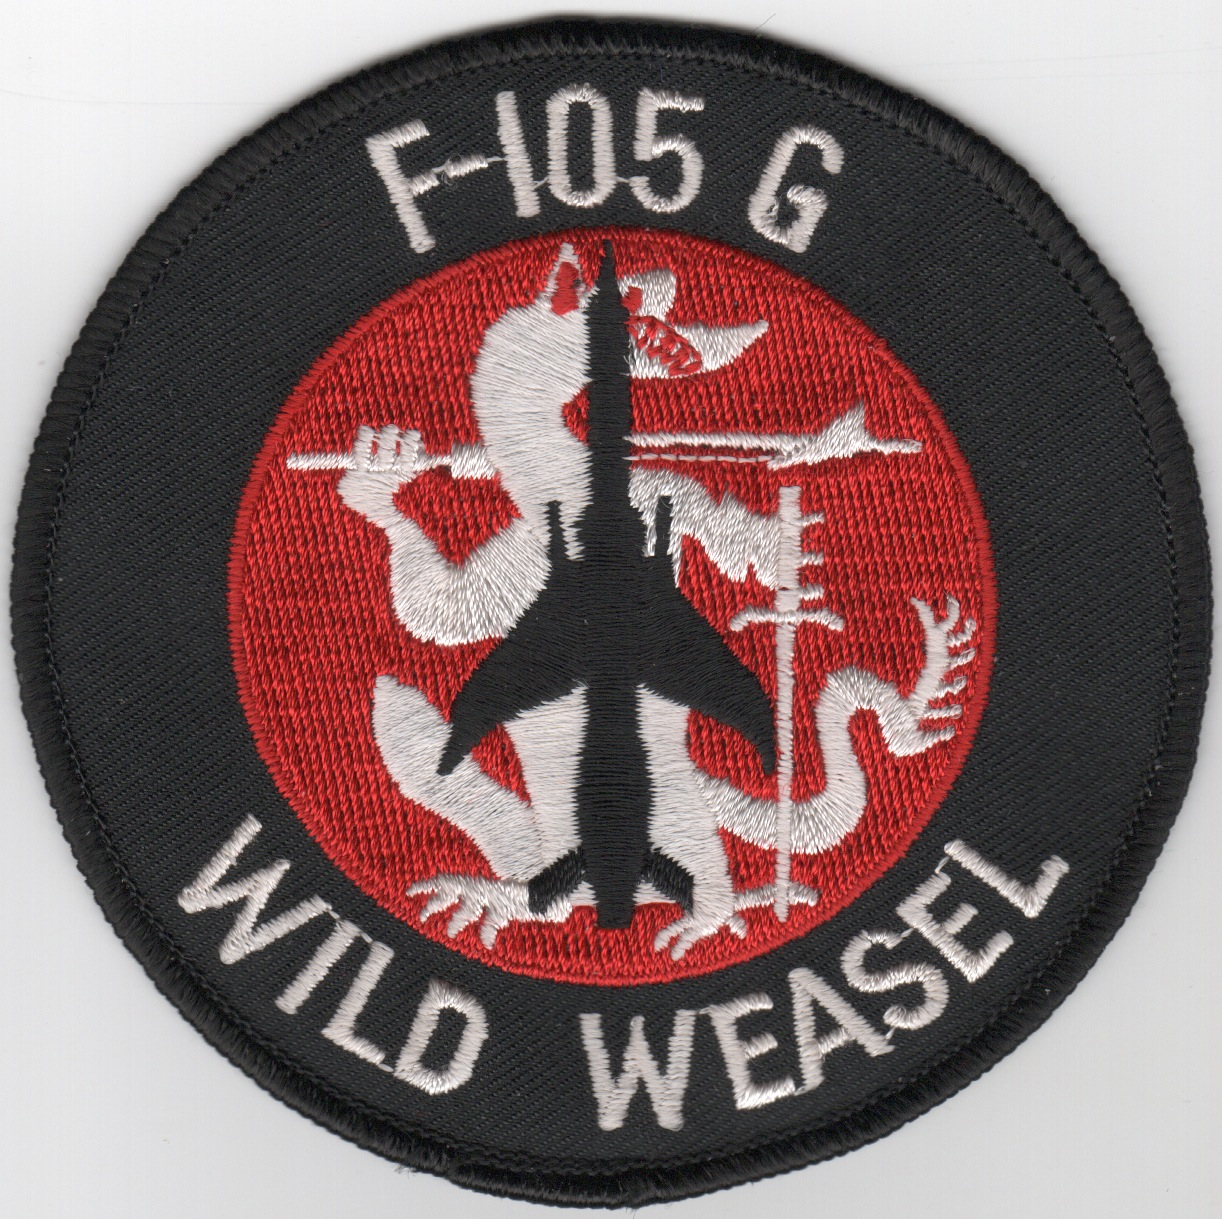 128TFS F-105G Wild Weasel Patch (Red/White/Original)